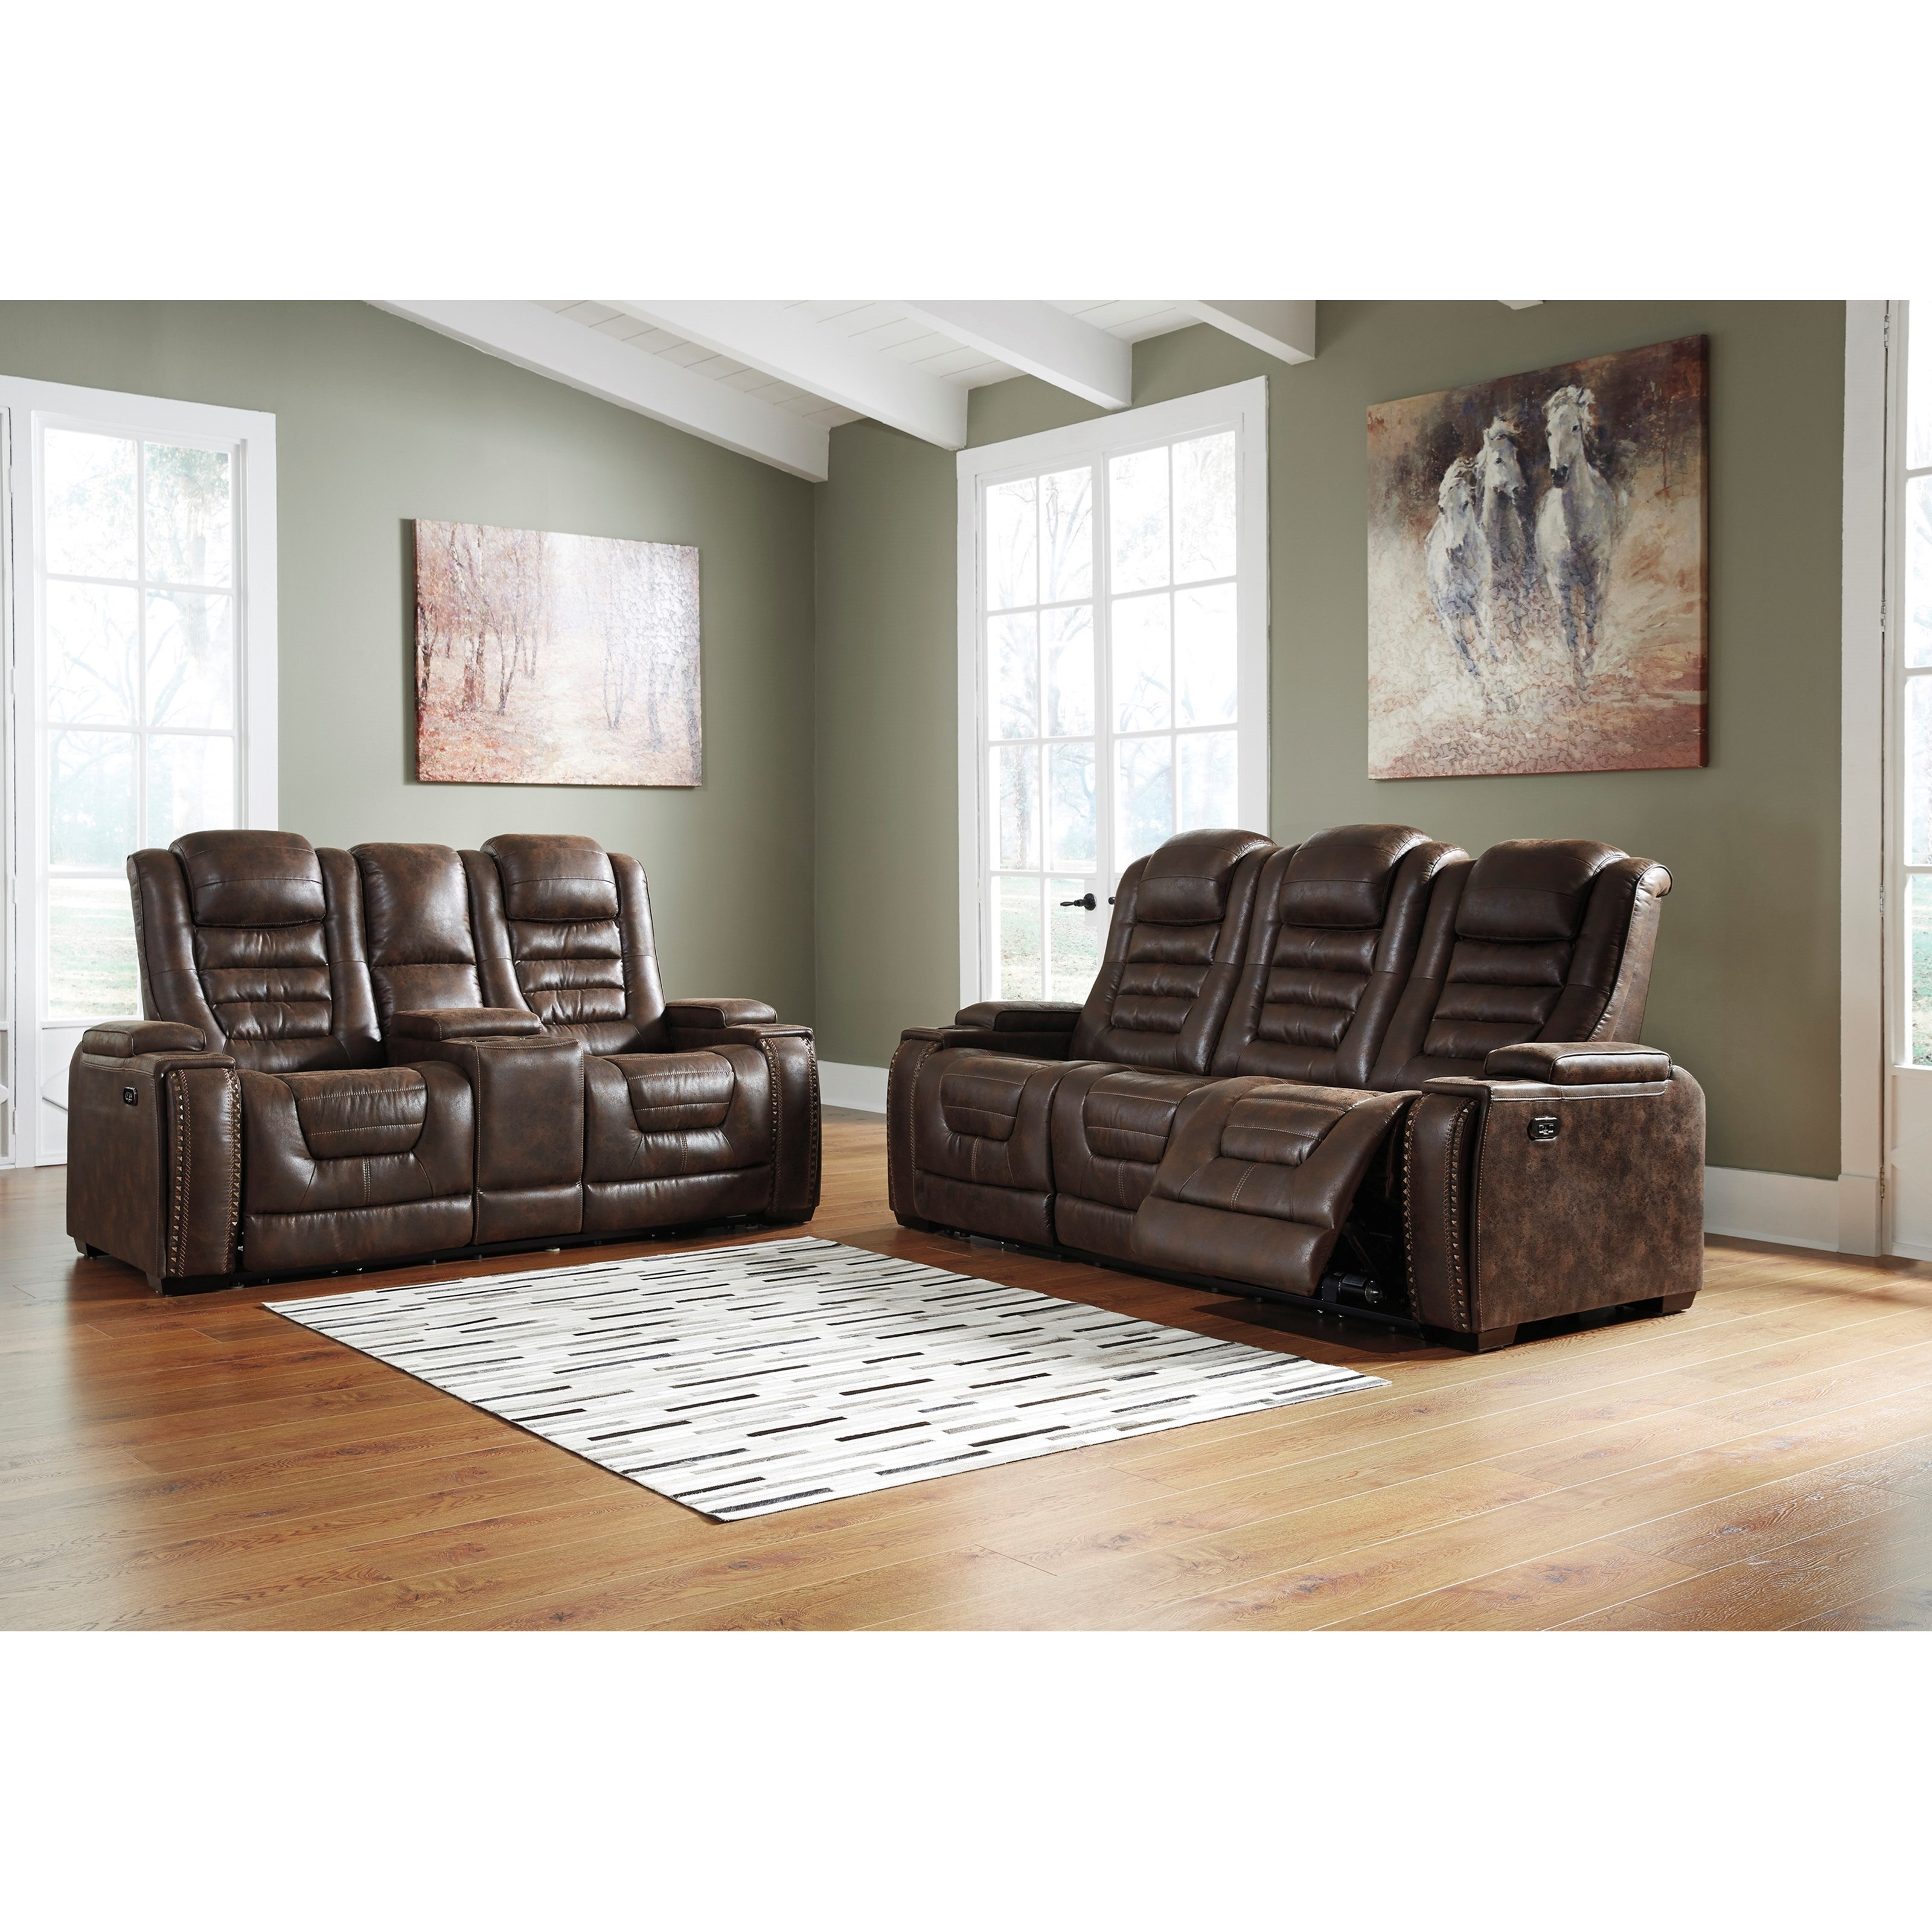 Game Zone Reclining Living Room Group by Signature Design by Ashley at Factory Direct Furniture